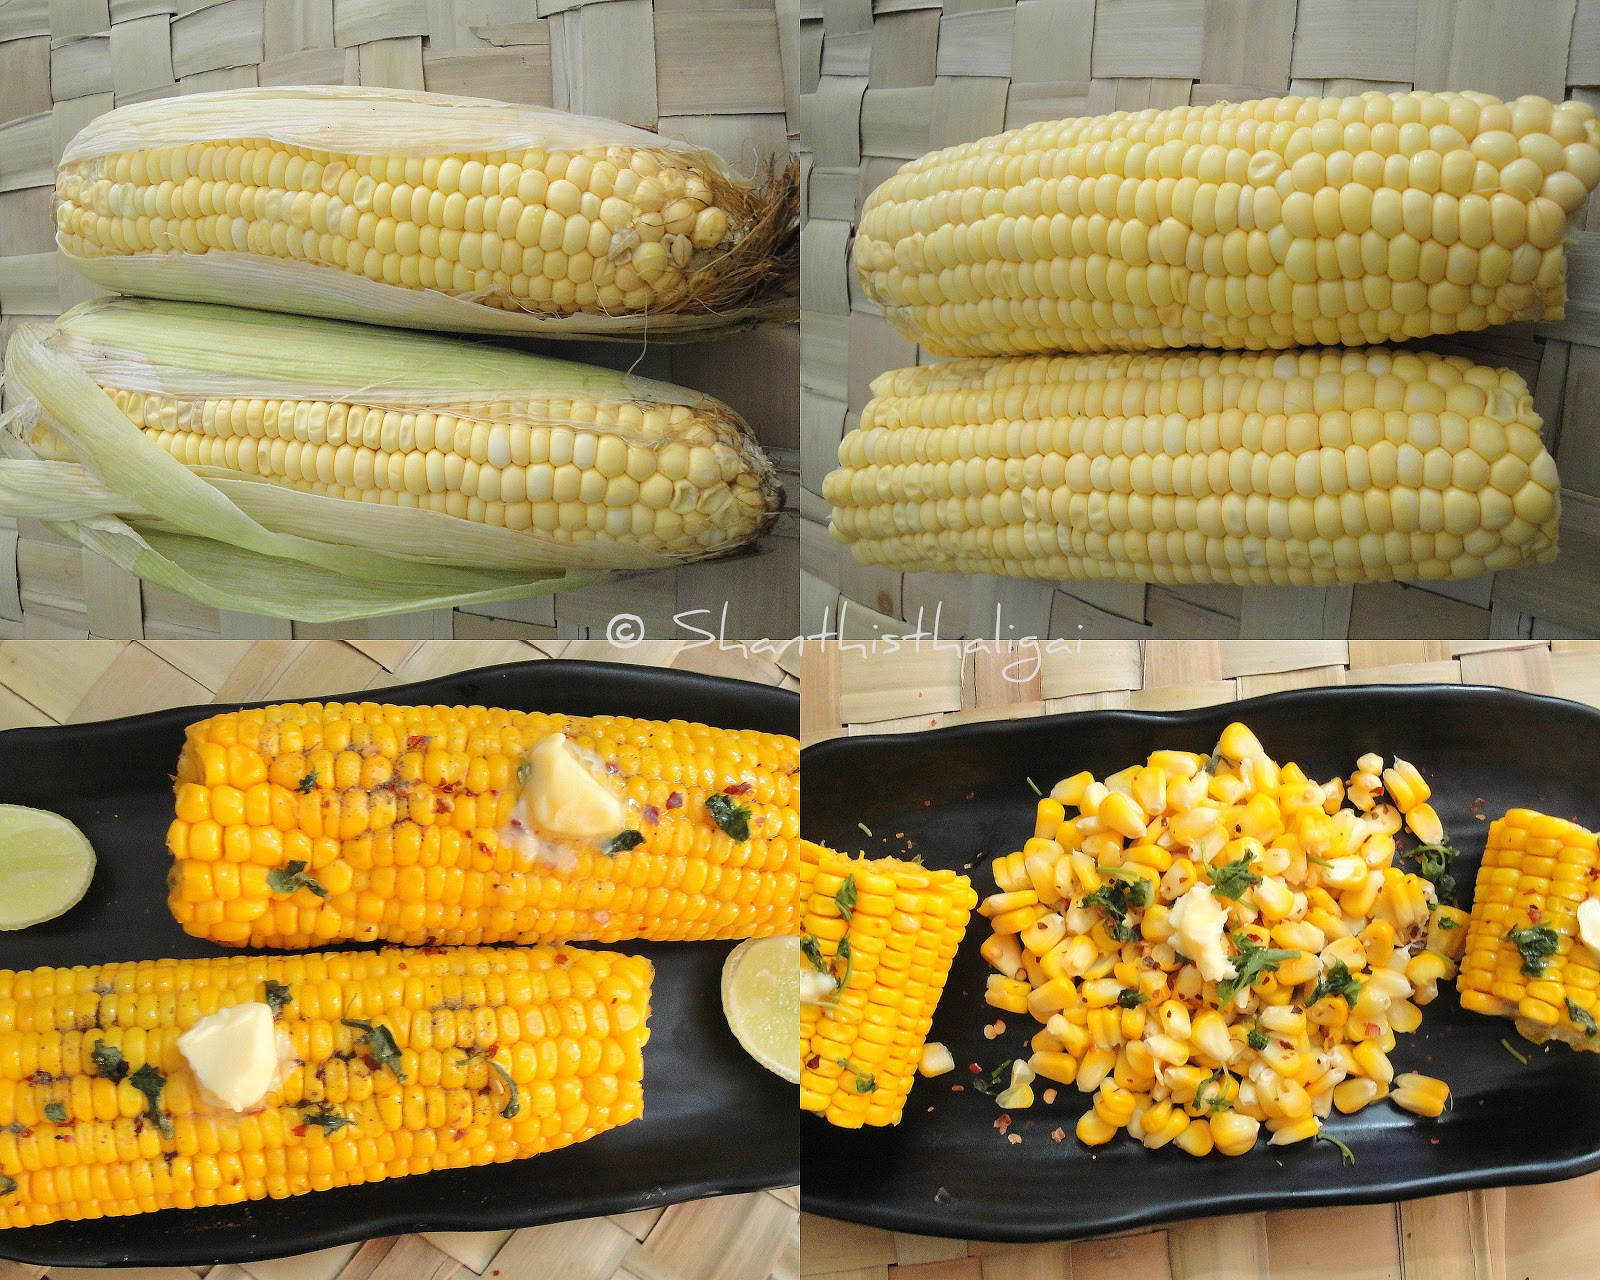 How to make corn on cob?